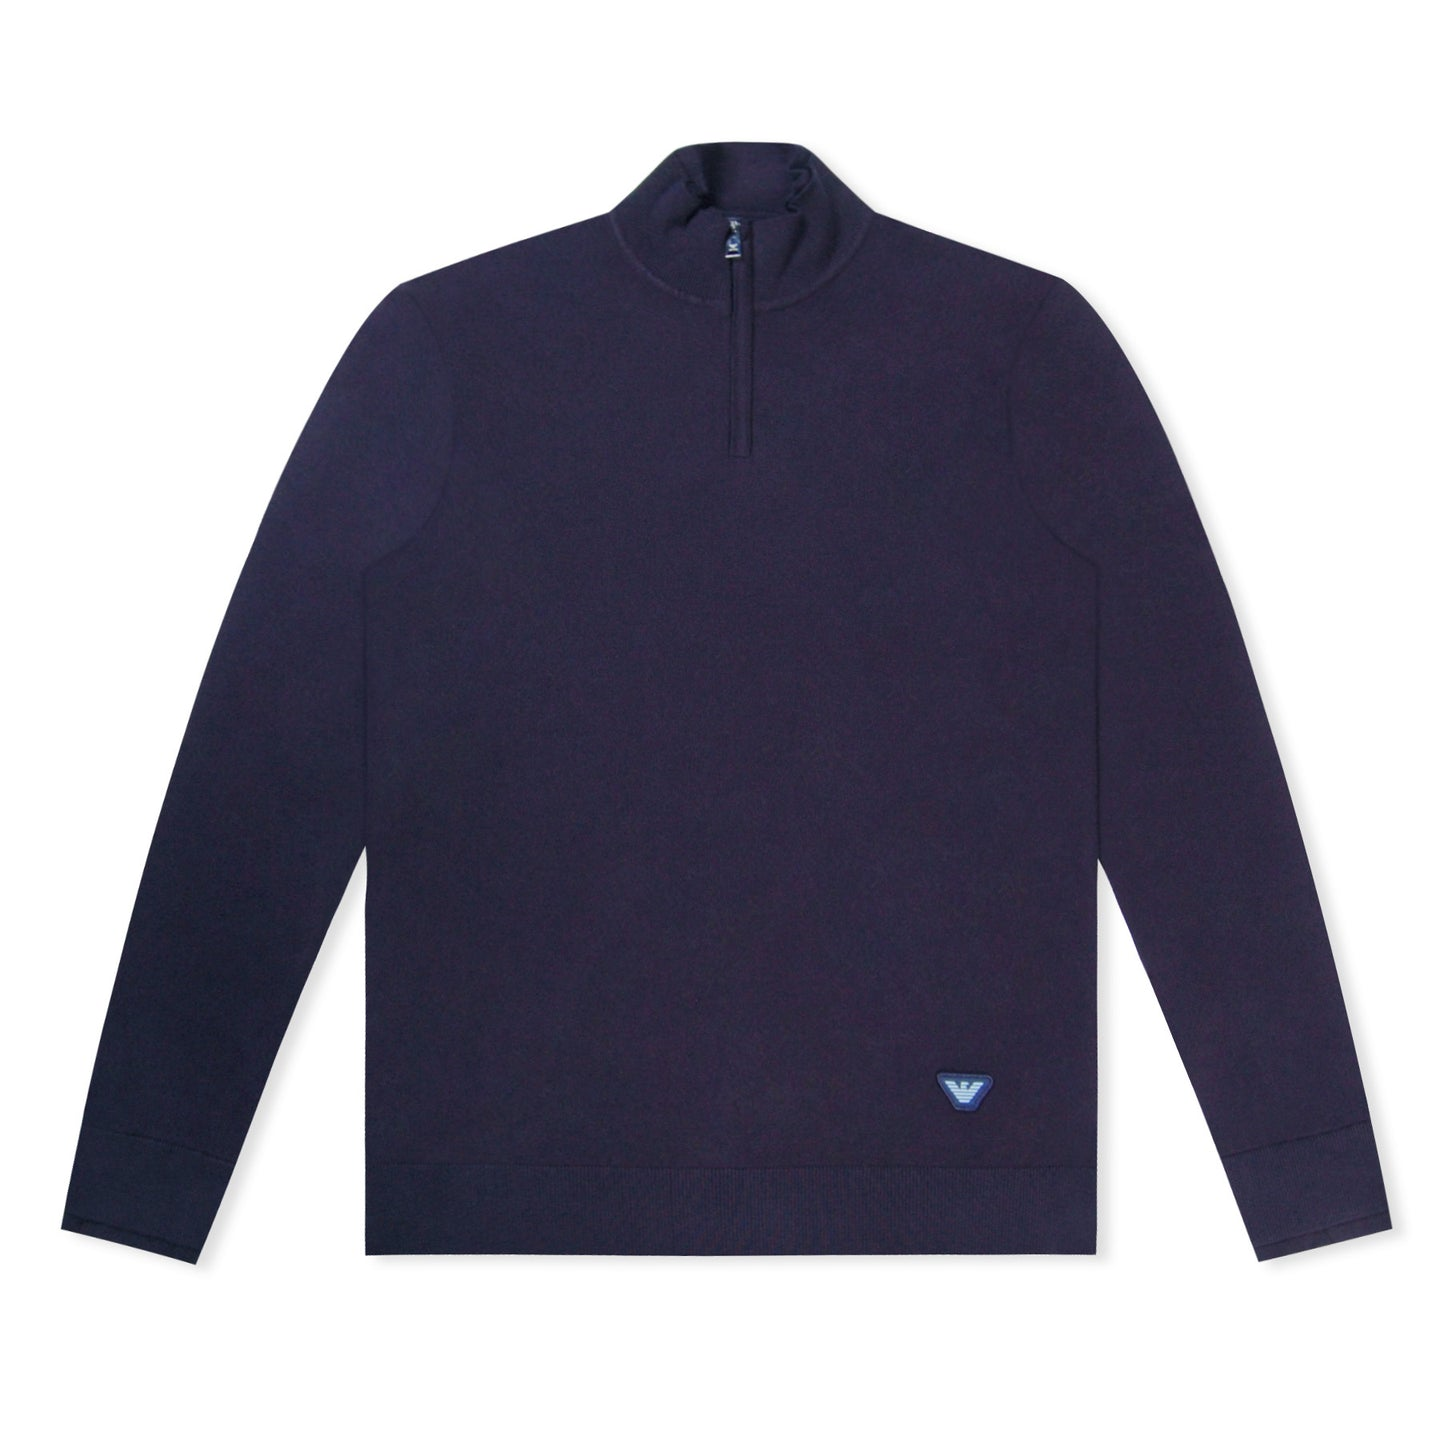 Navy Emporio Armani Half Zip Knitted jumper